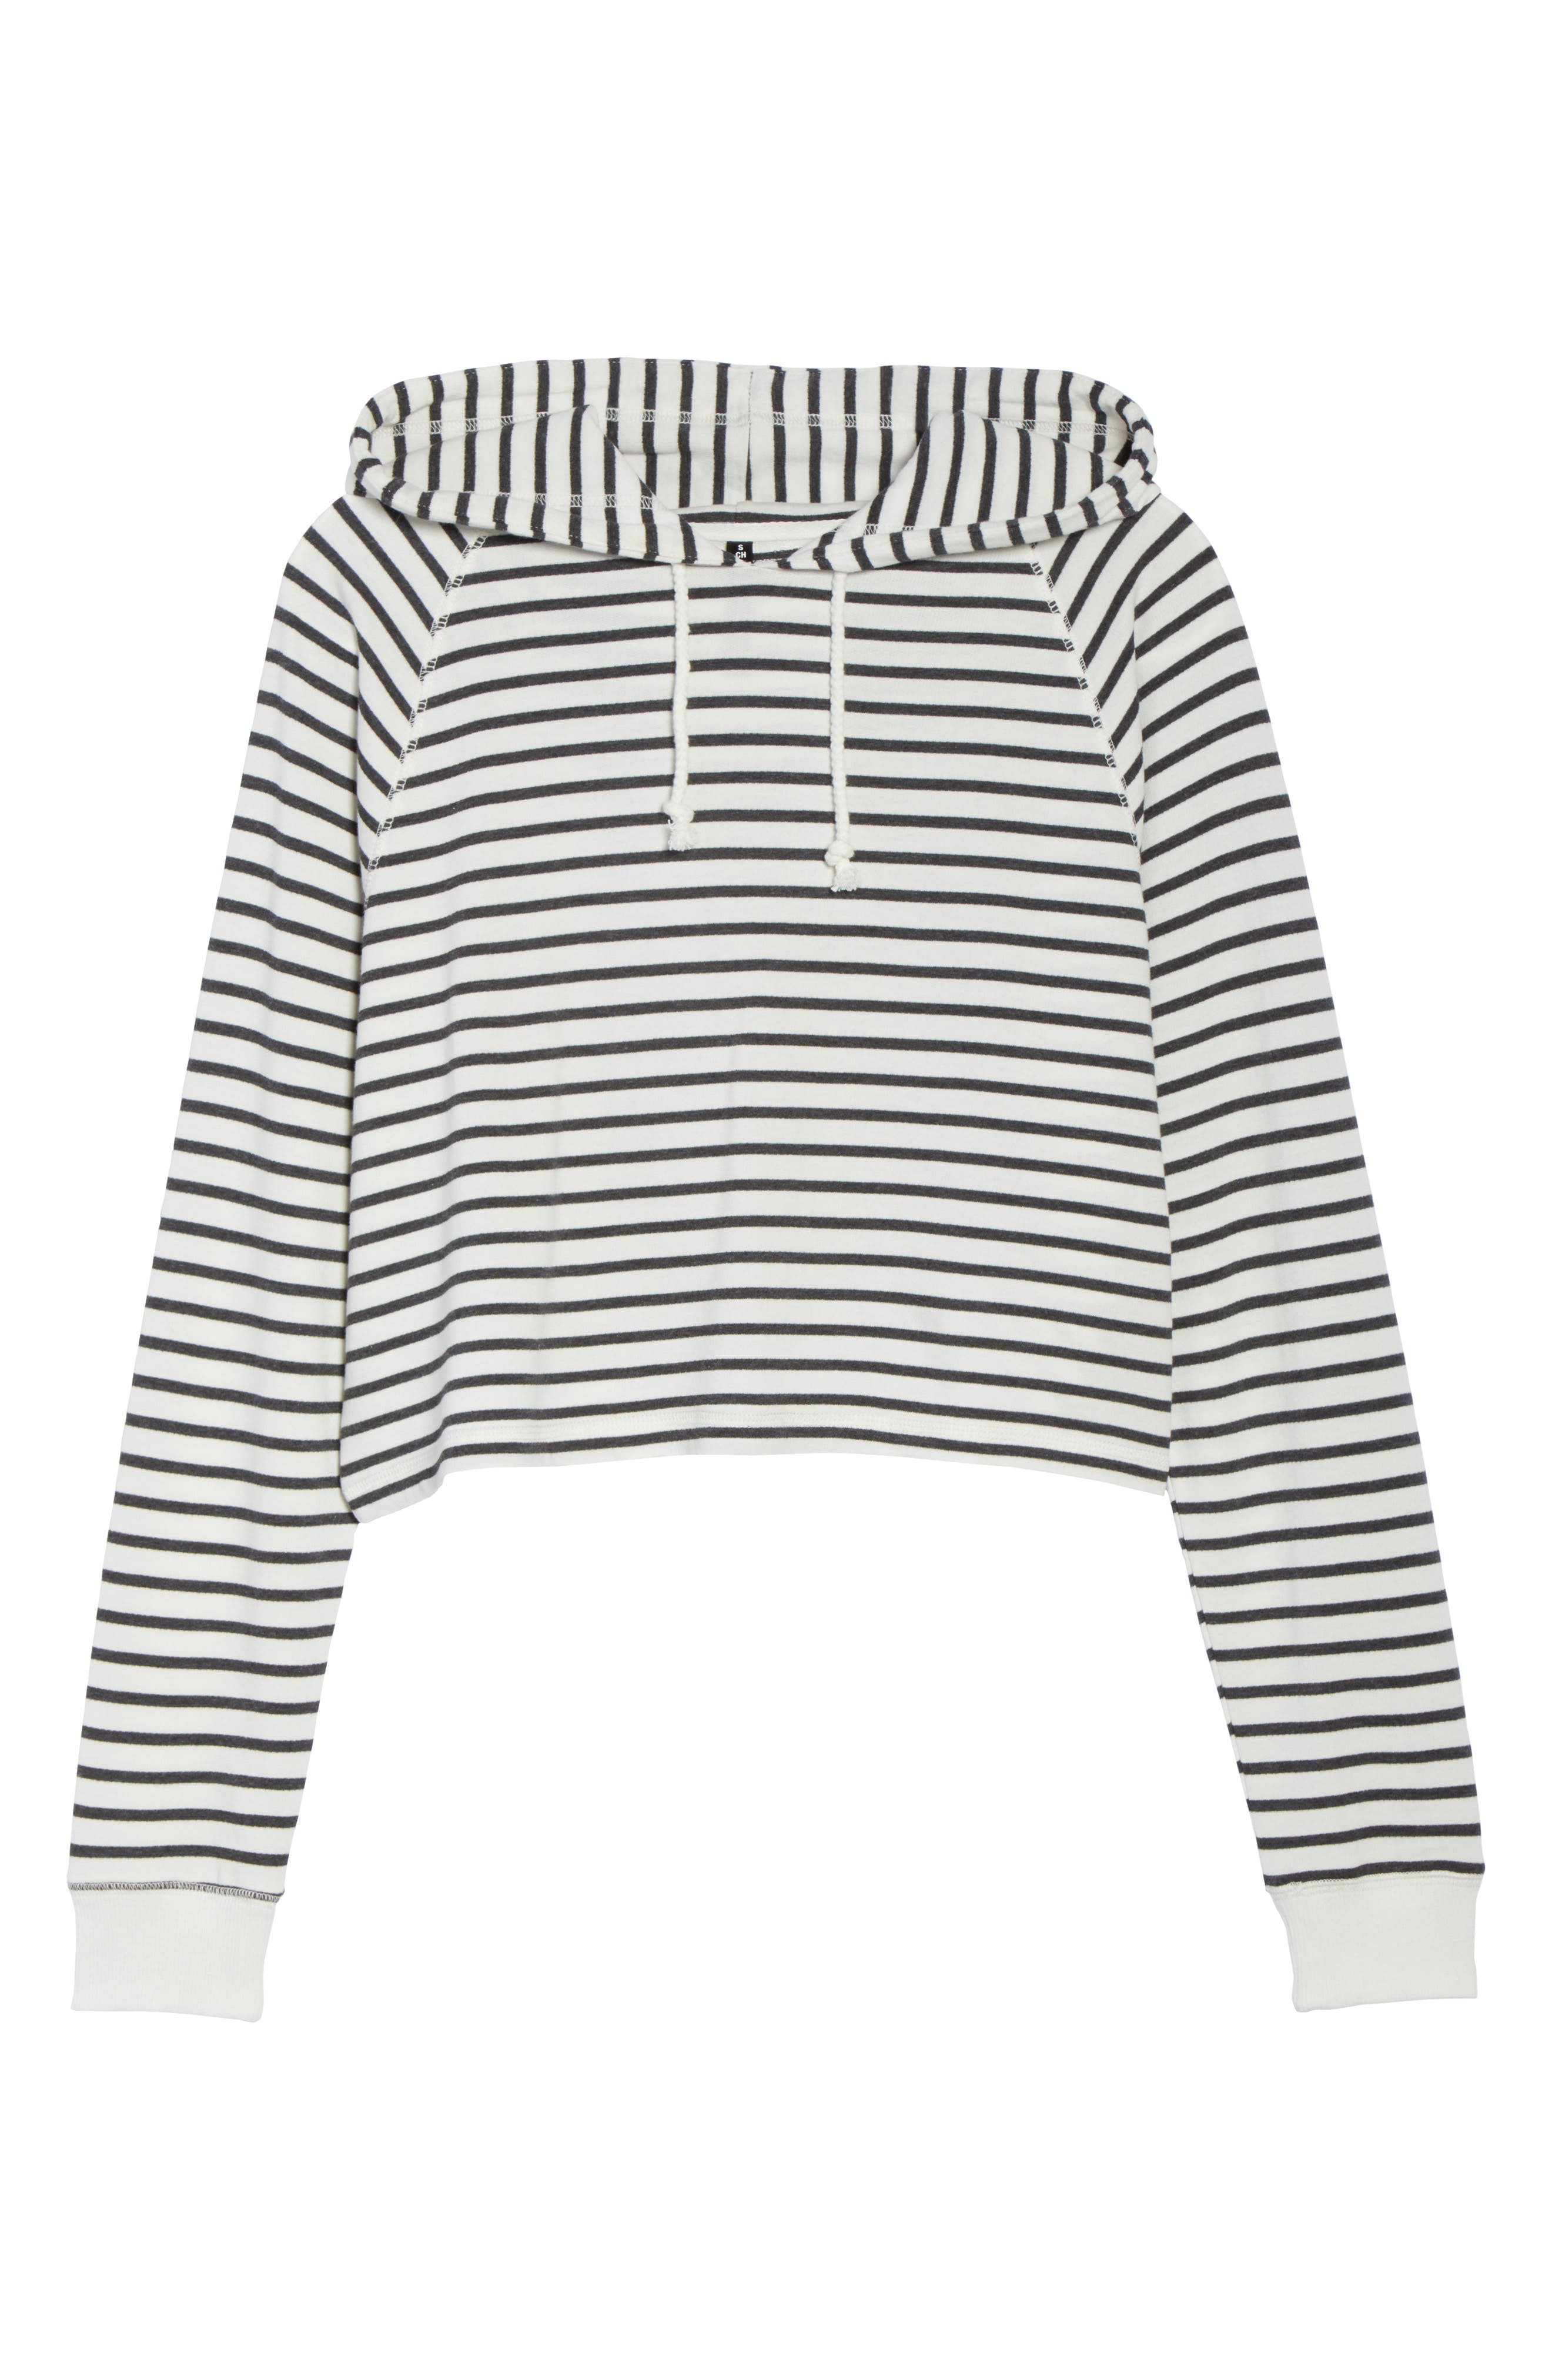 French Terry Crop Hoodie,                             Alternate thumbnail 4, color,                             Heather Black Stripe